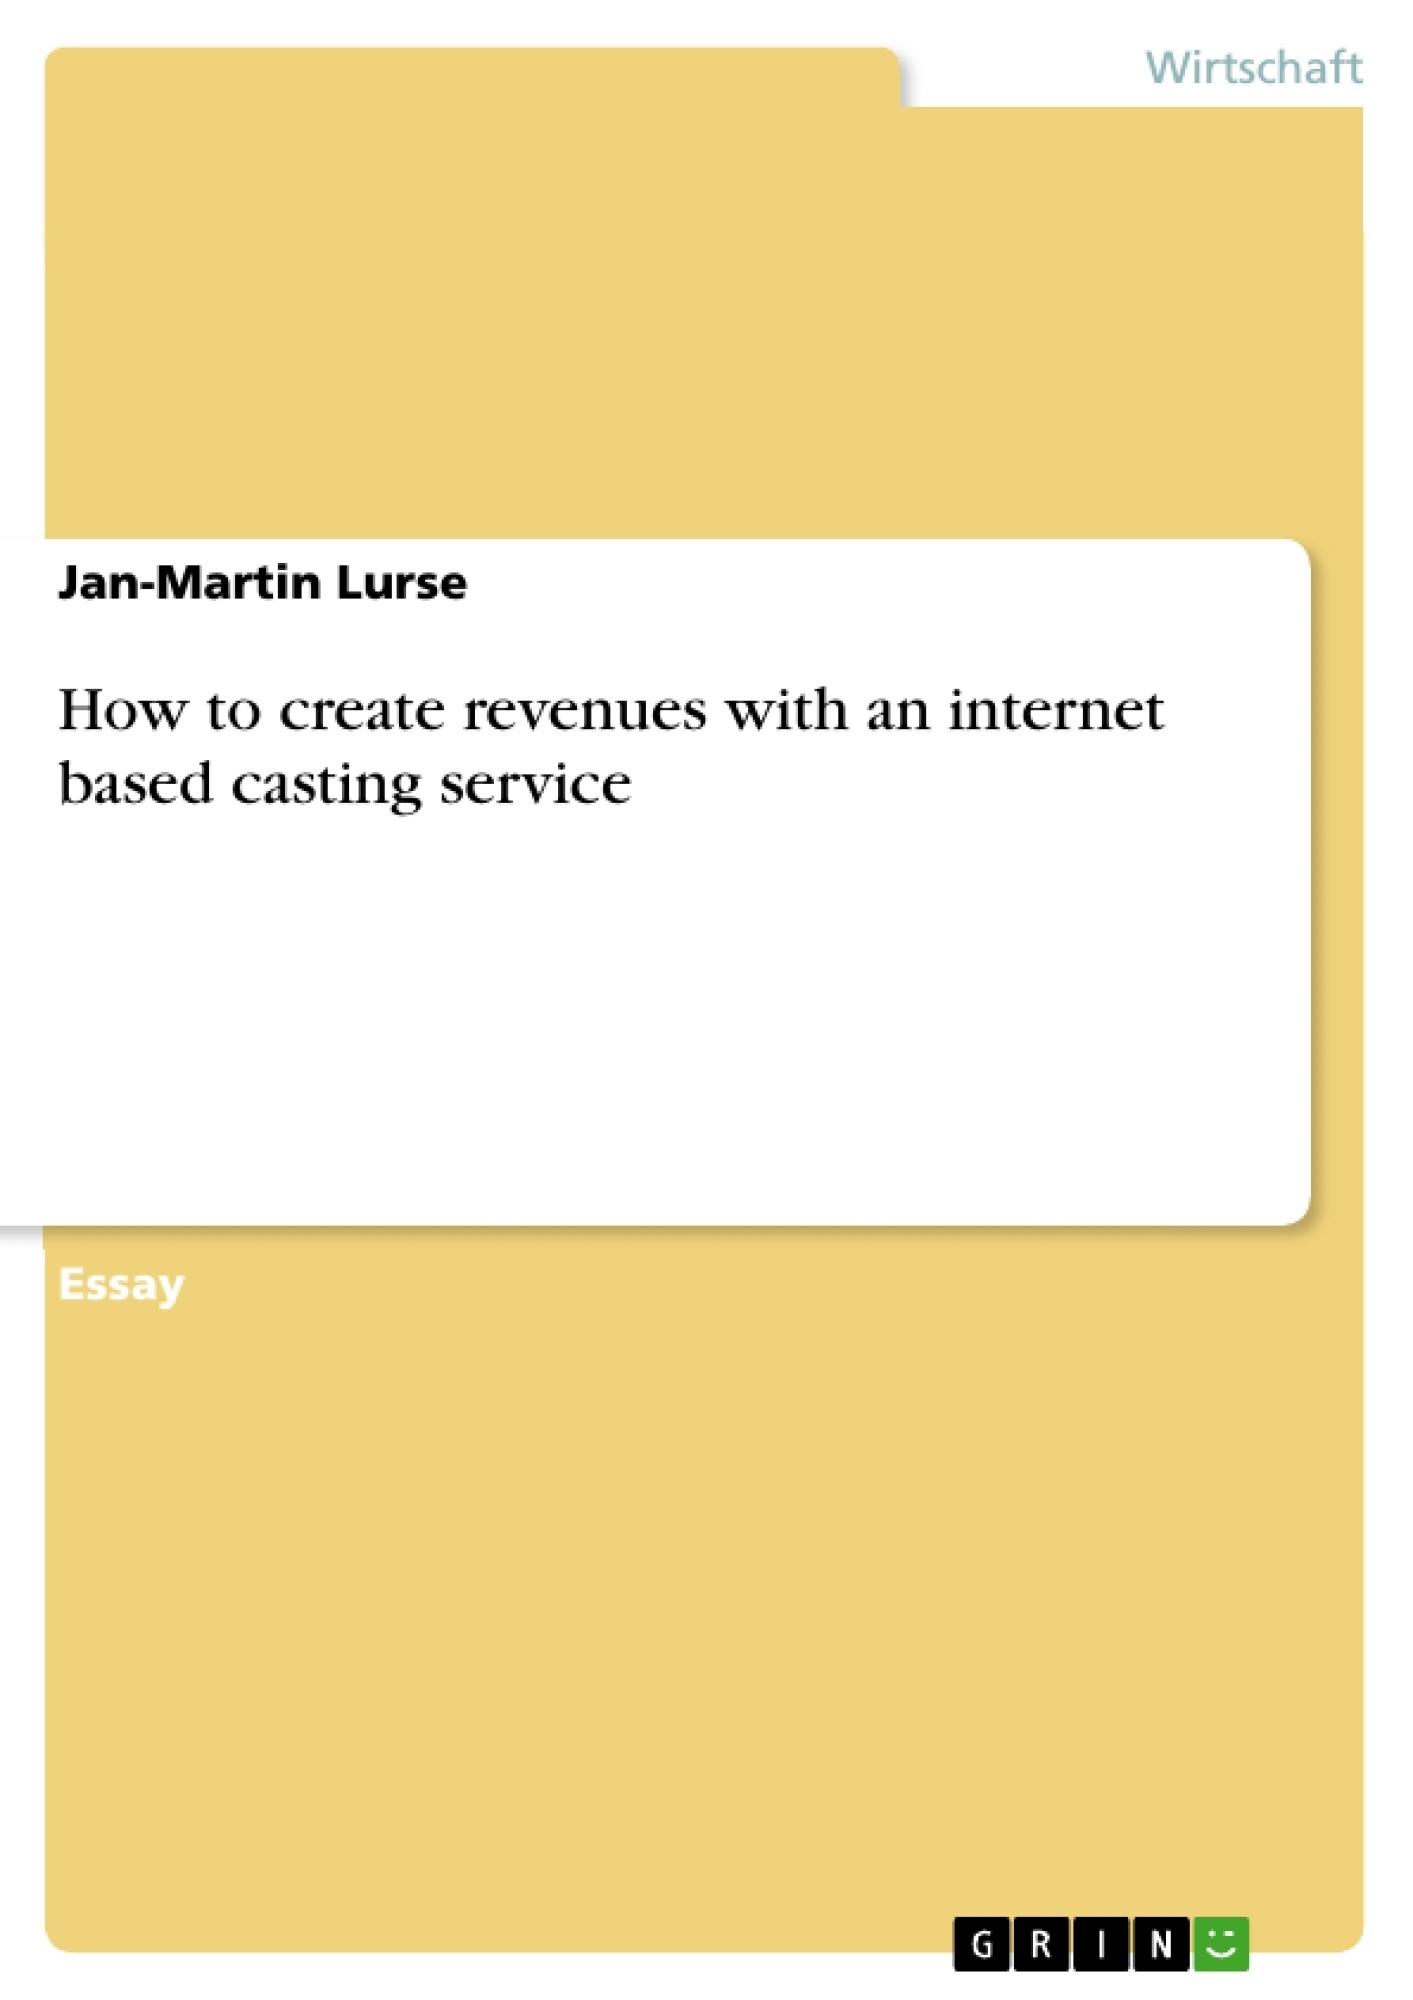 Titel: How to create revenues with an internet based casting service